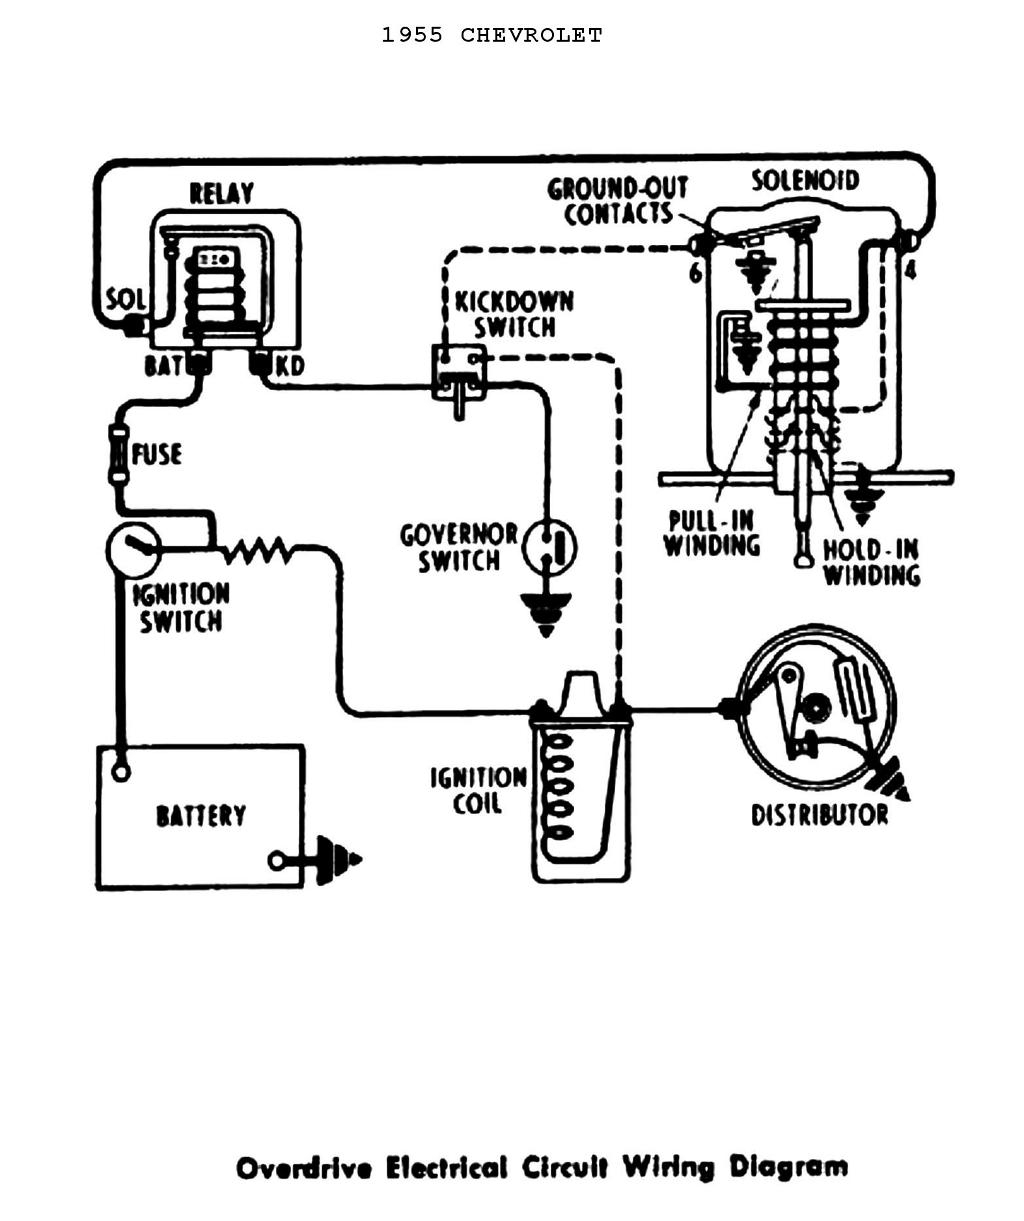 FORD MAVERICK IGNITION    WIRING     Auto Electrical    Wiring       Diagram